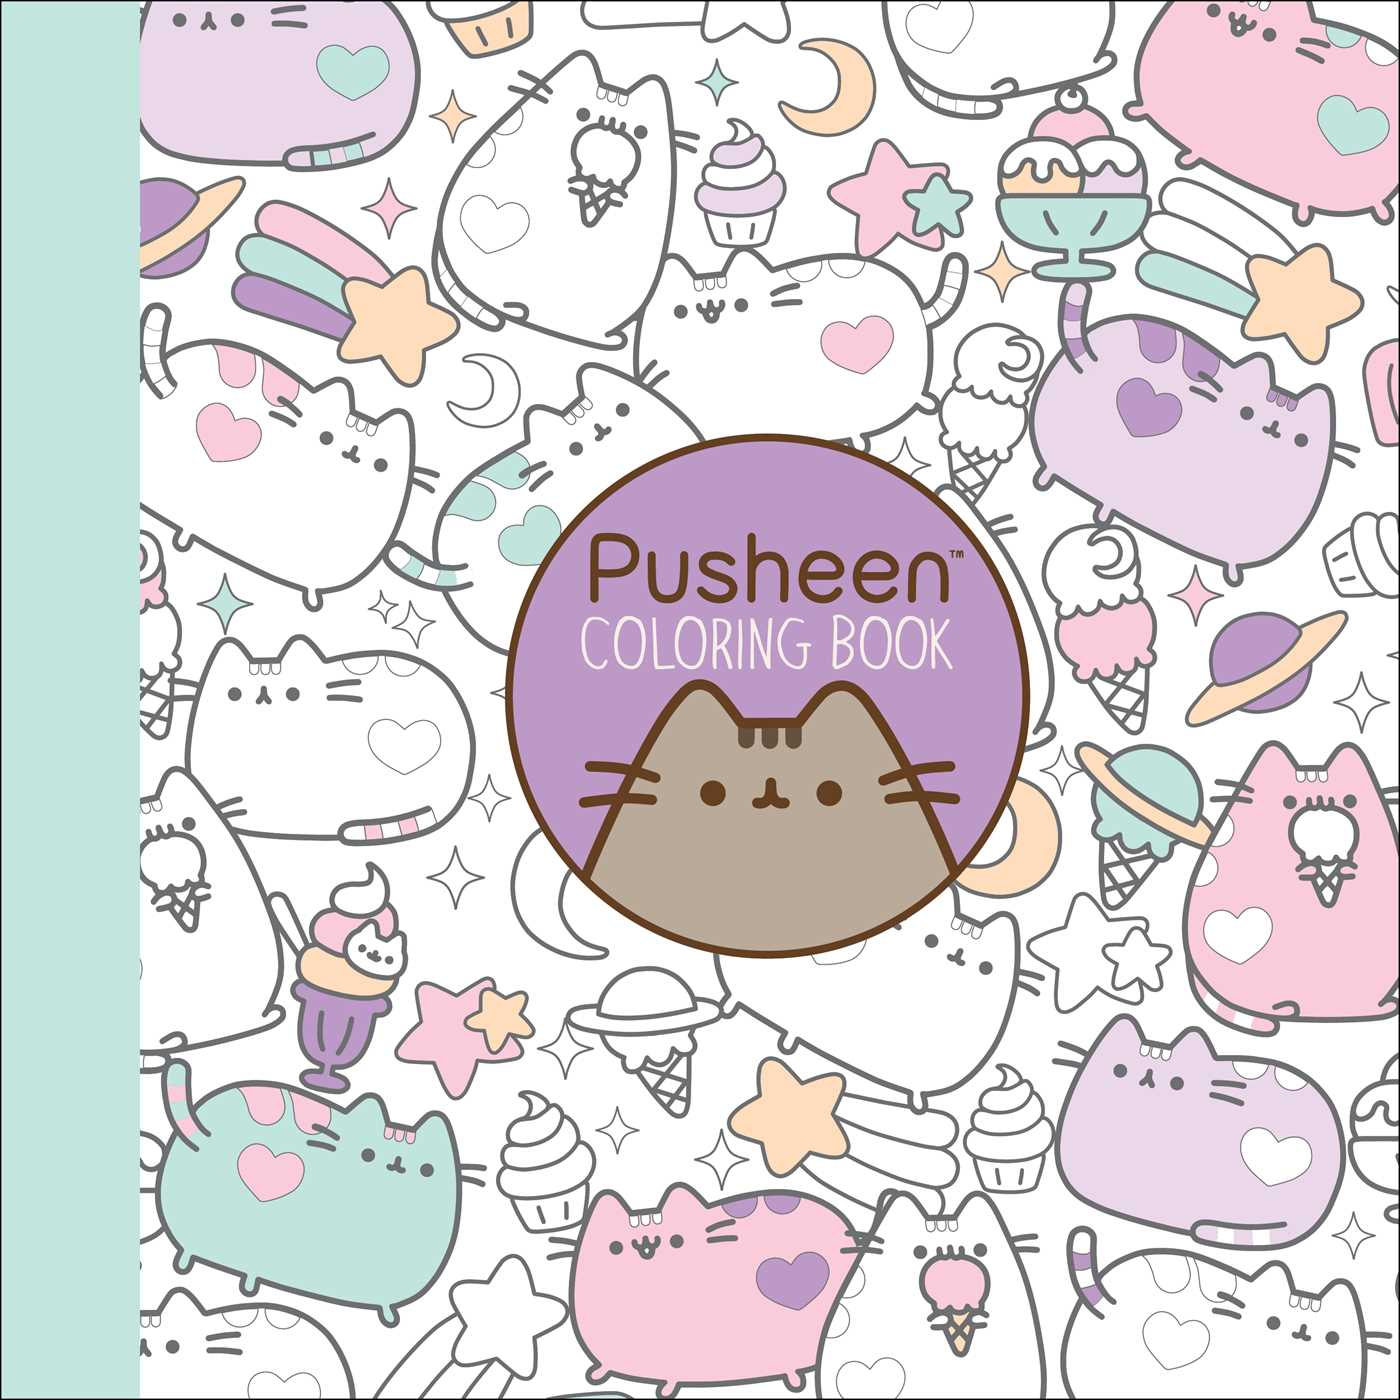 Pusheen Coloring Book